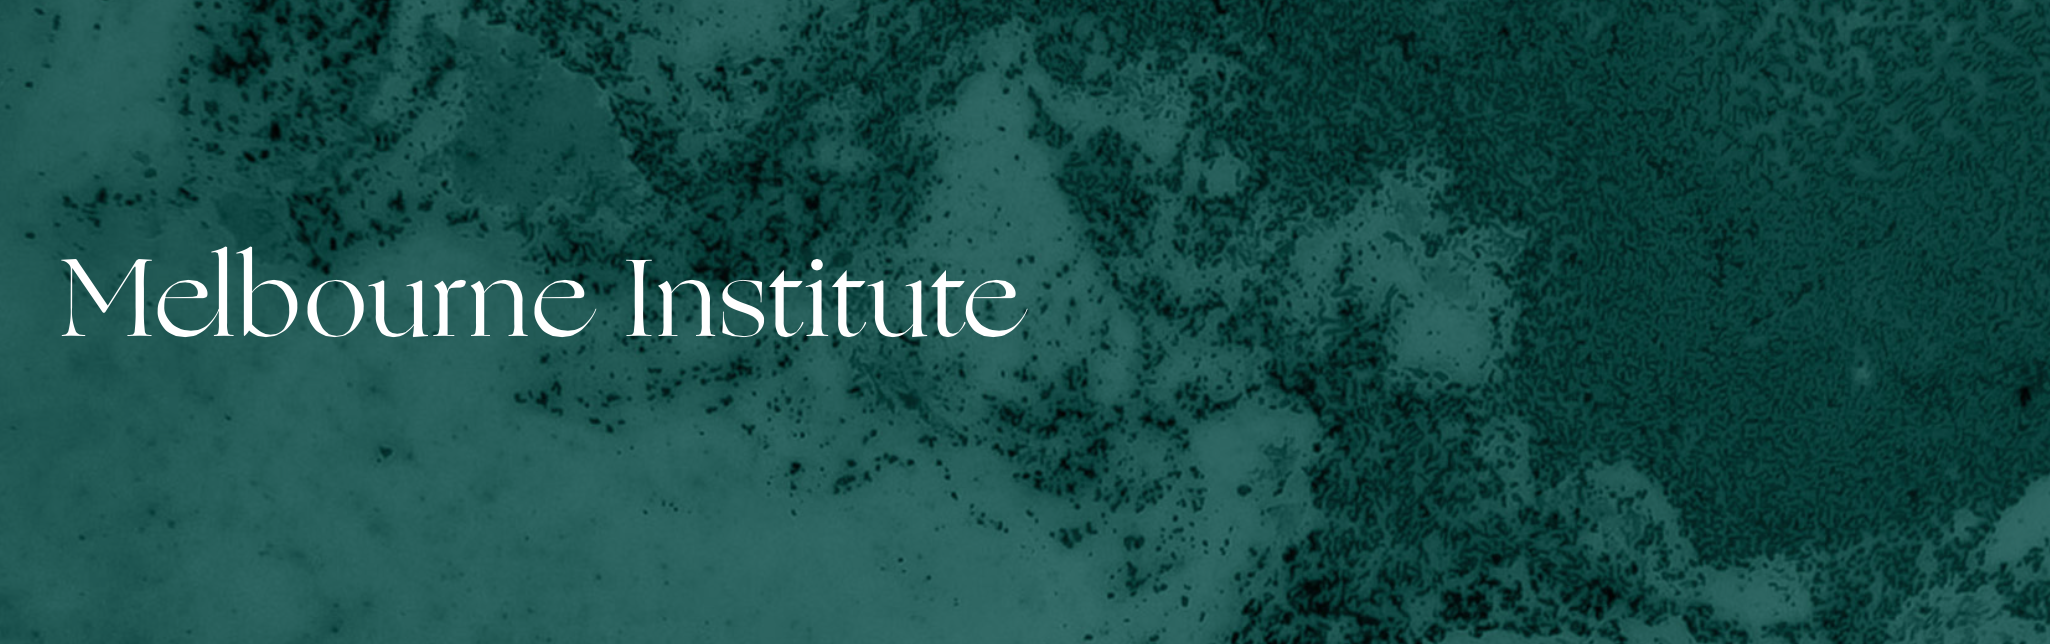 MelbourneInstitute_Image.png